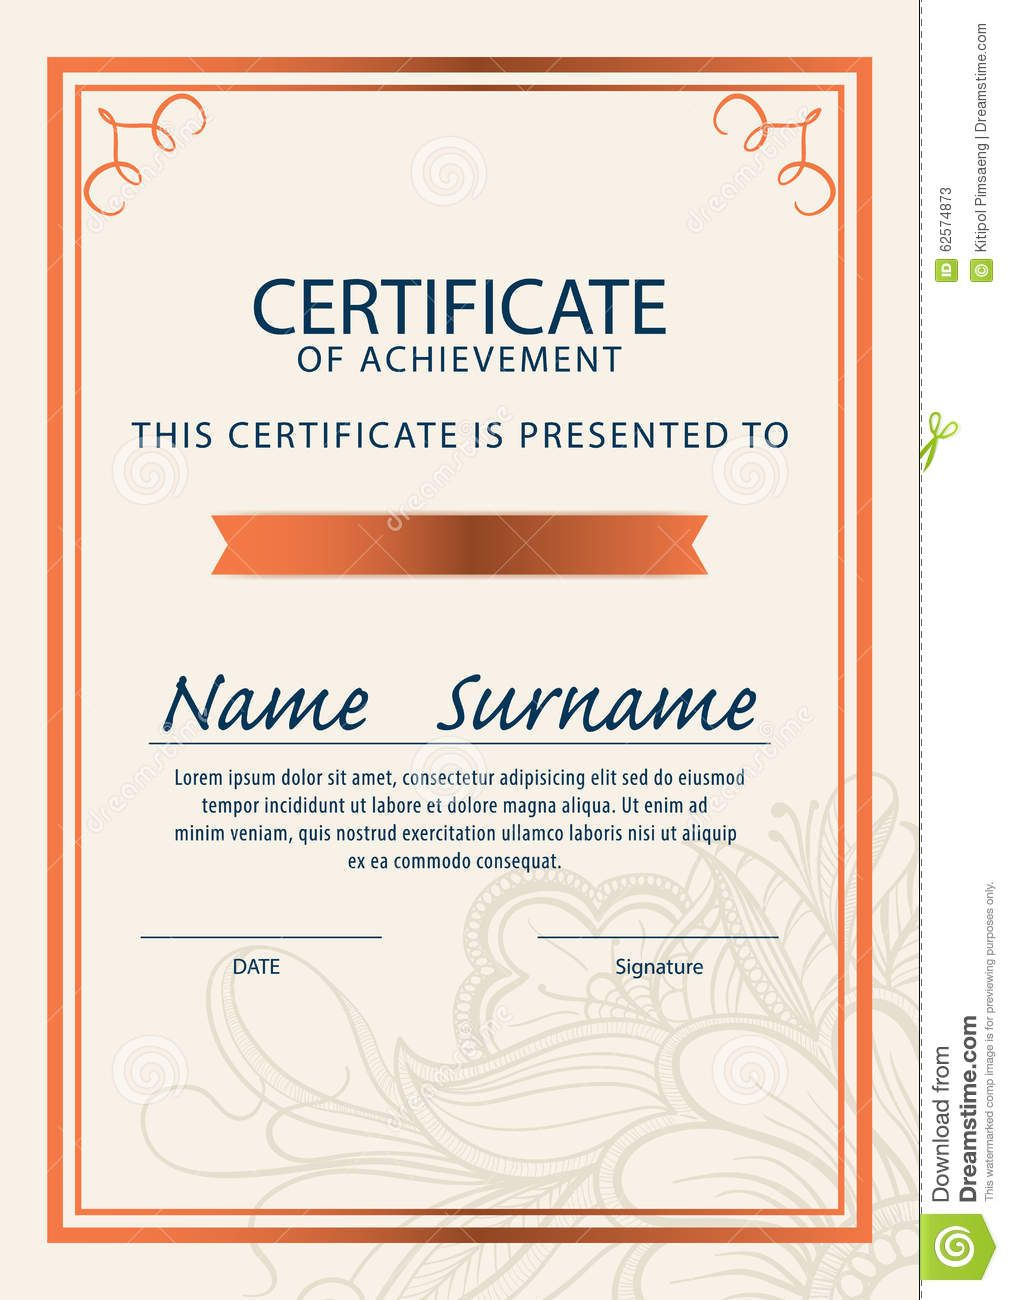 The Amusing Certificate Template Diploma A4 Size Vector